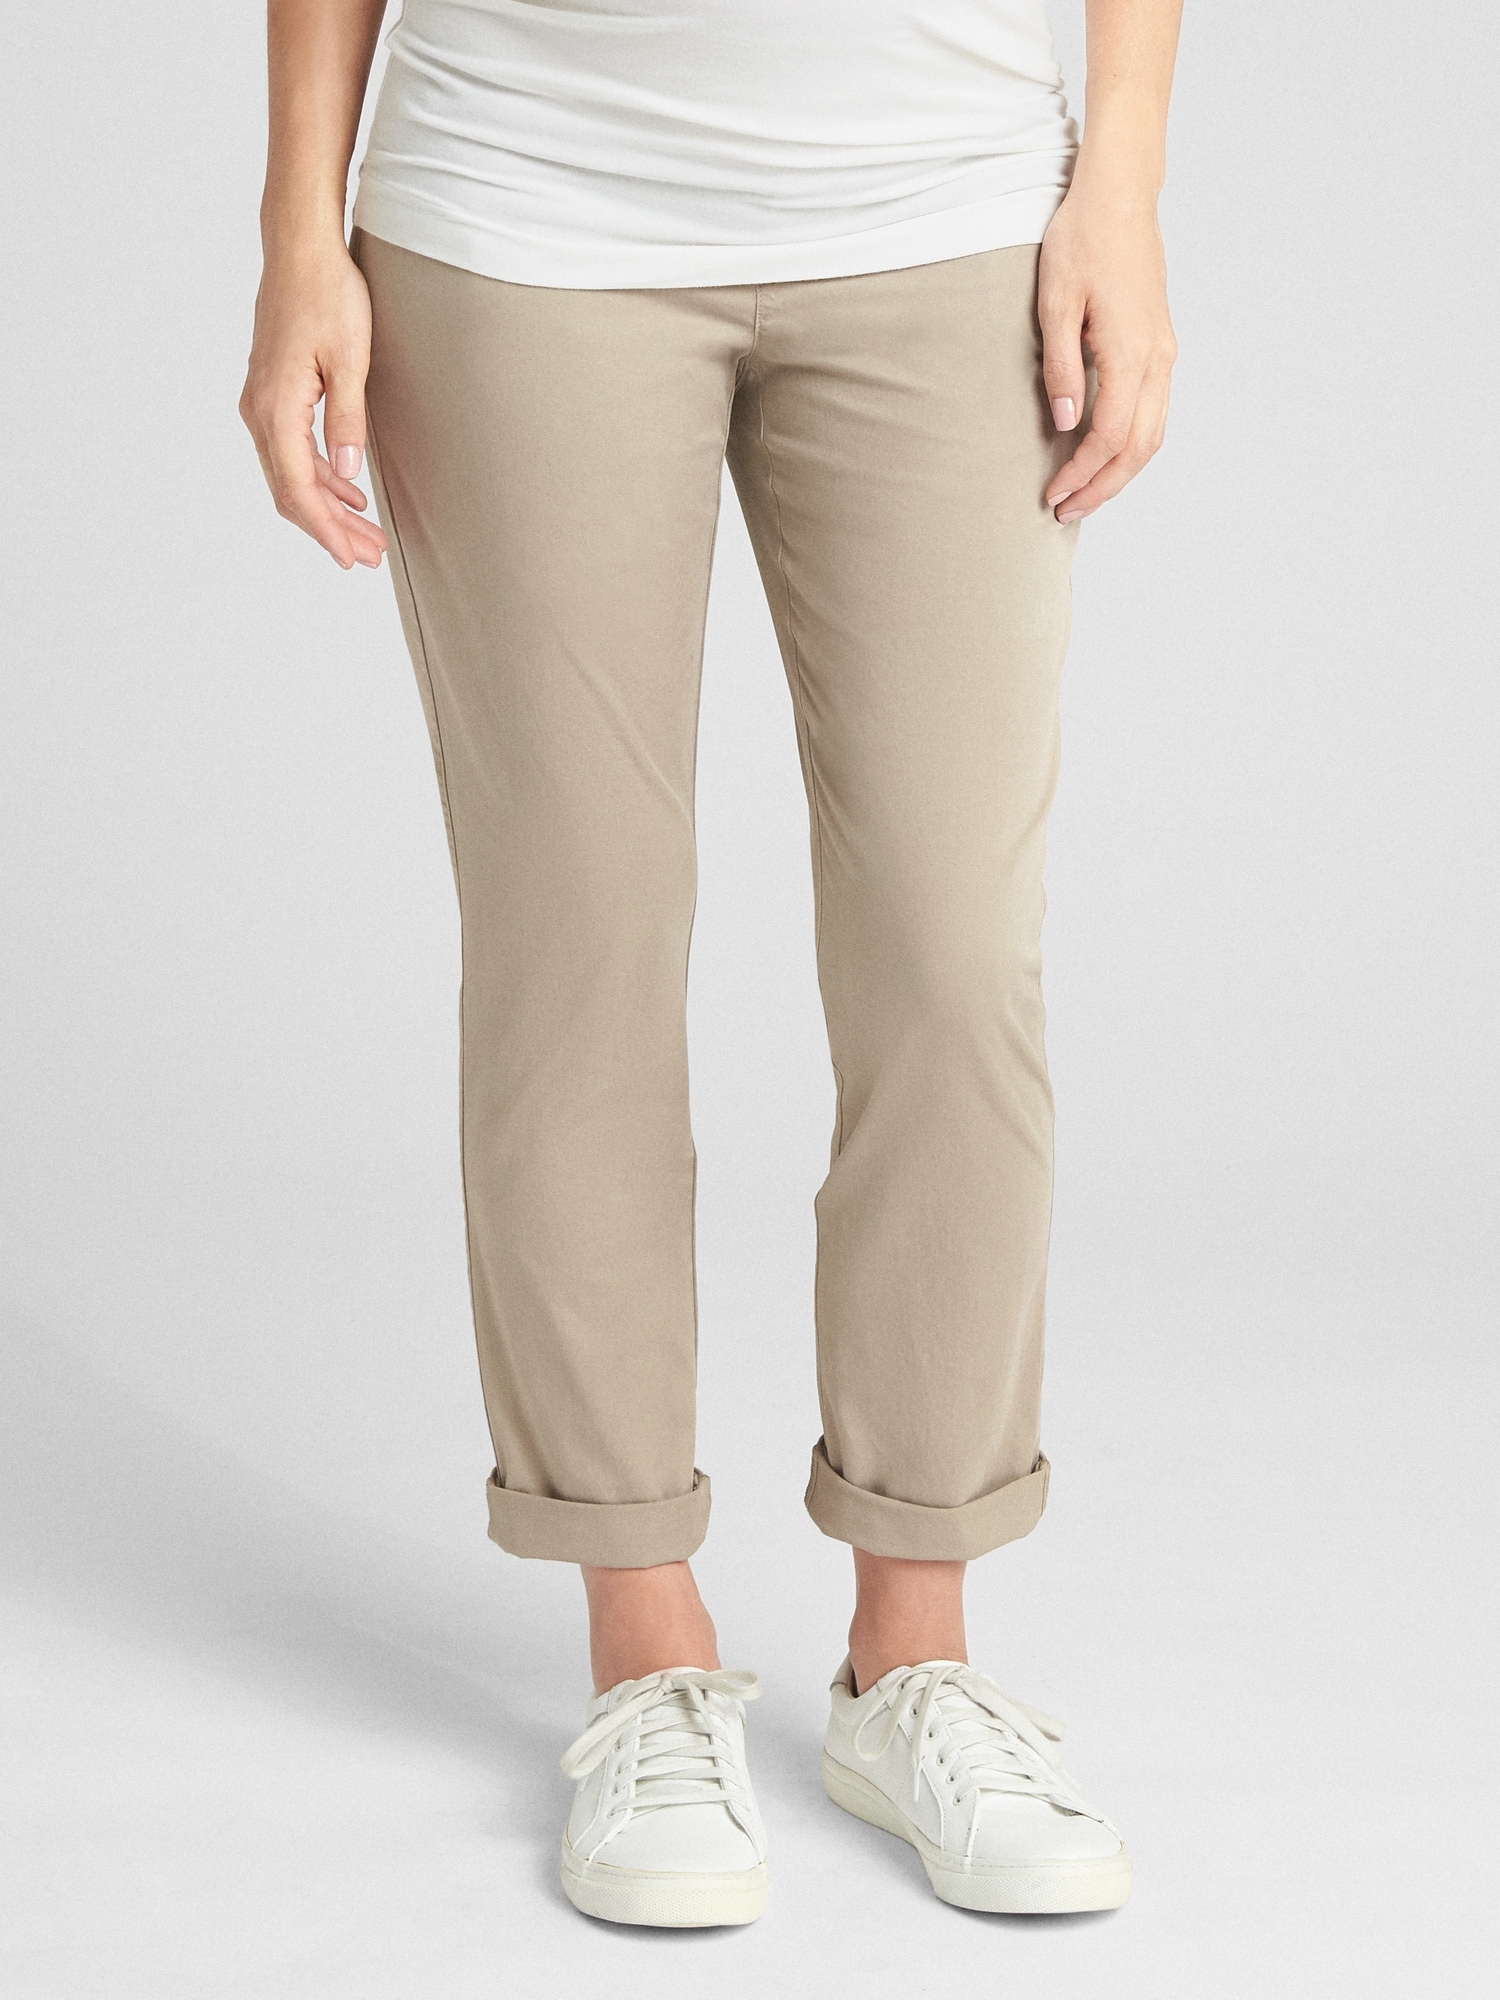 Gap Maternity Demi Panel Girlfriend Chino Pants